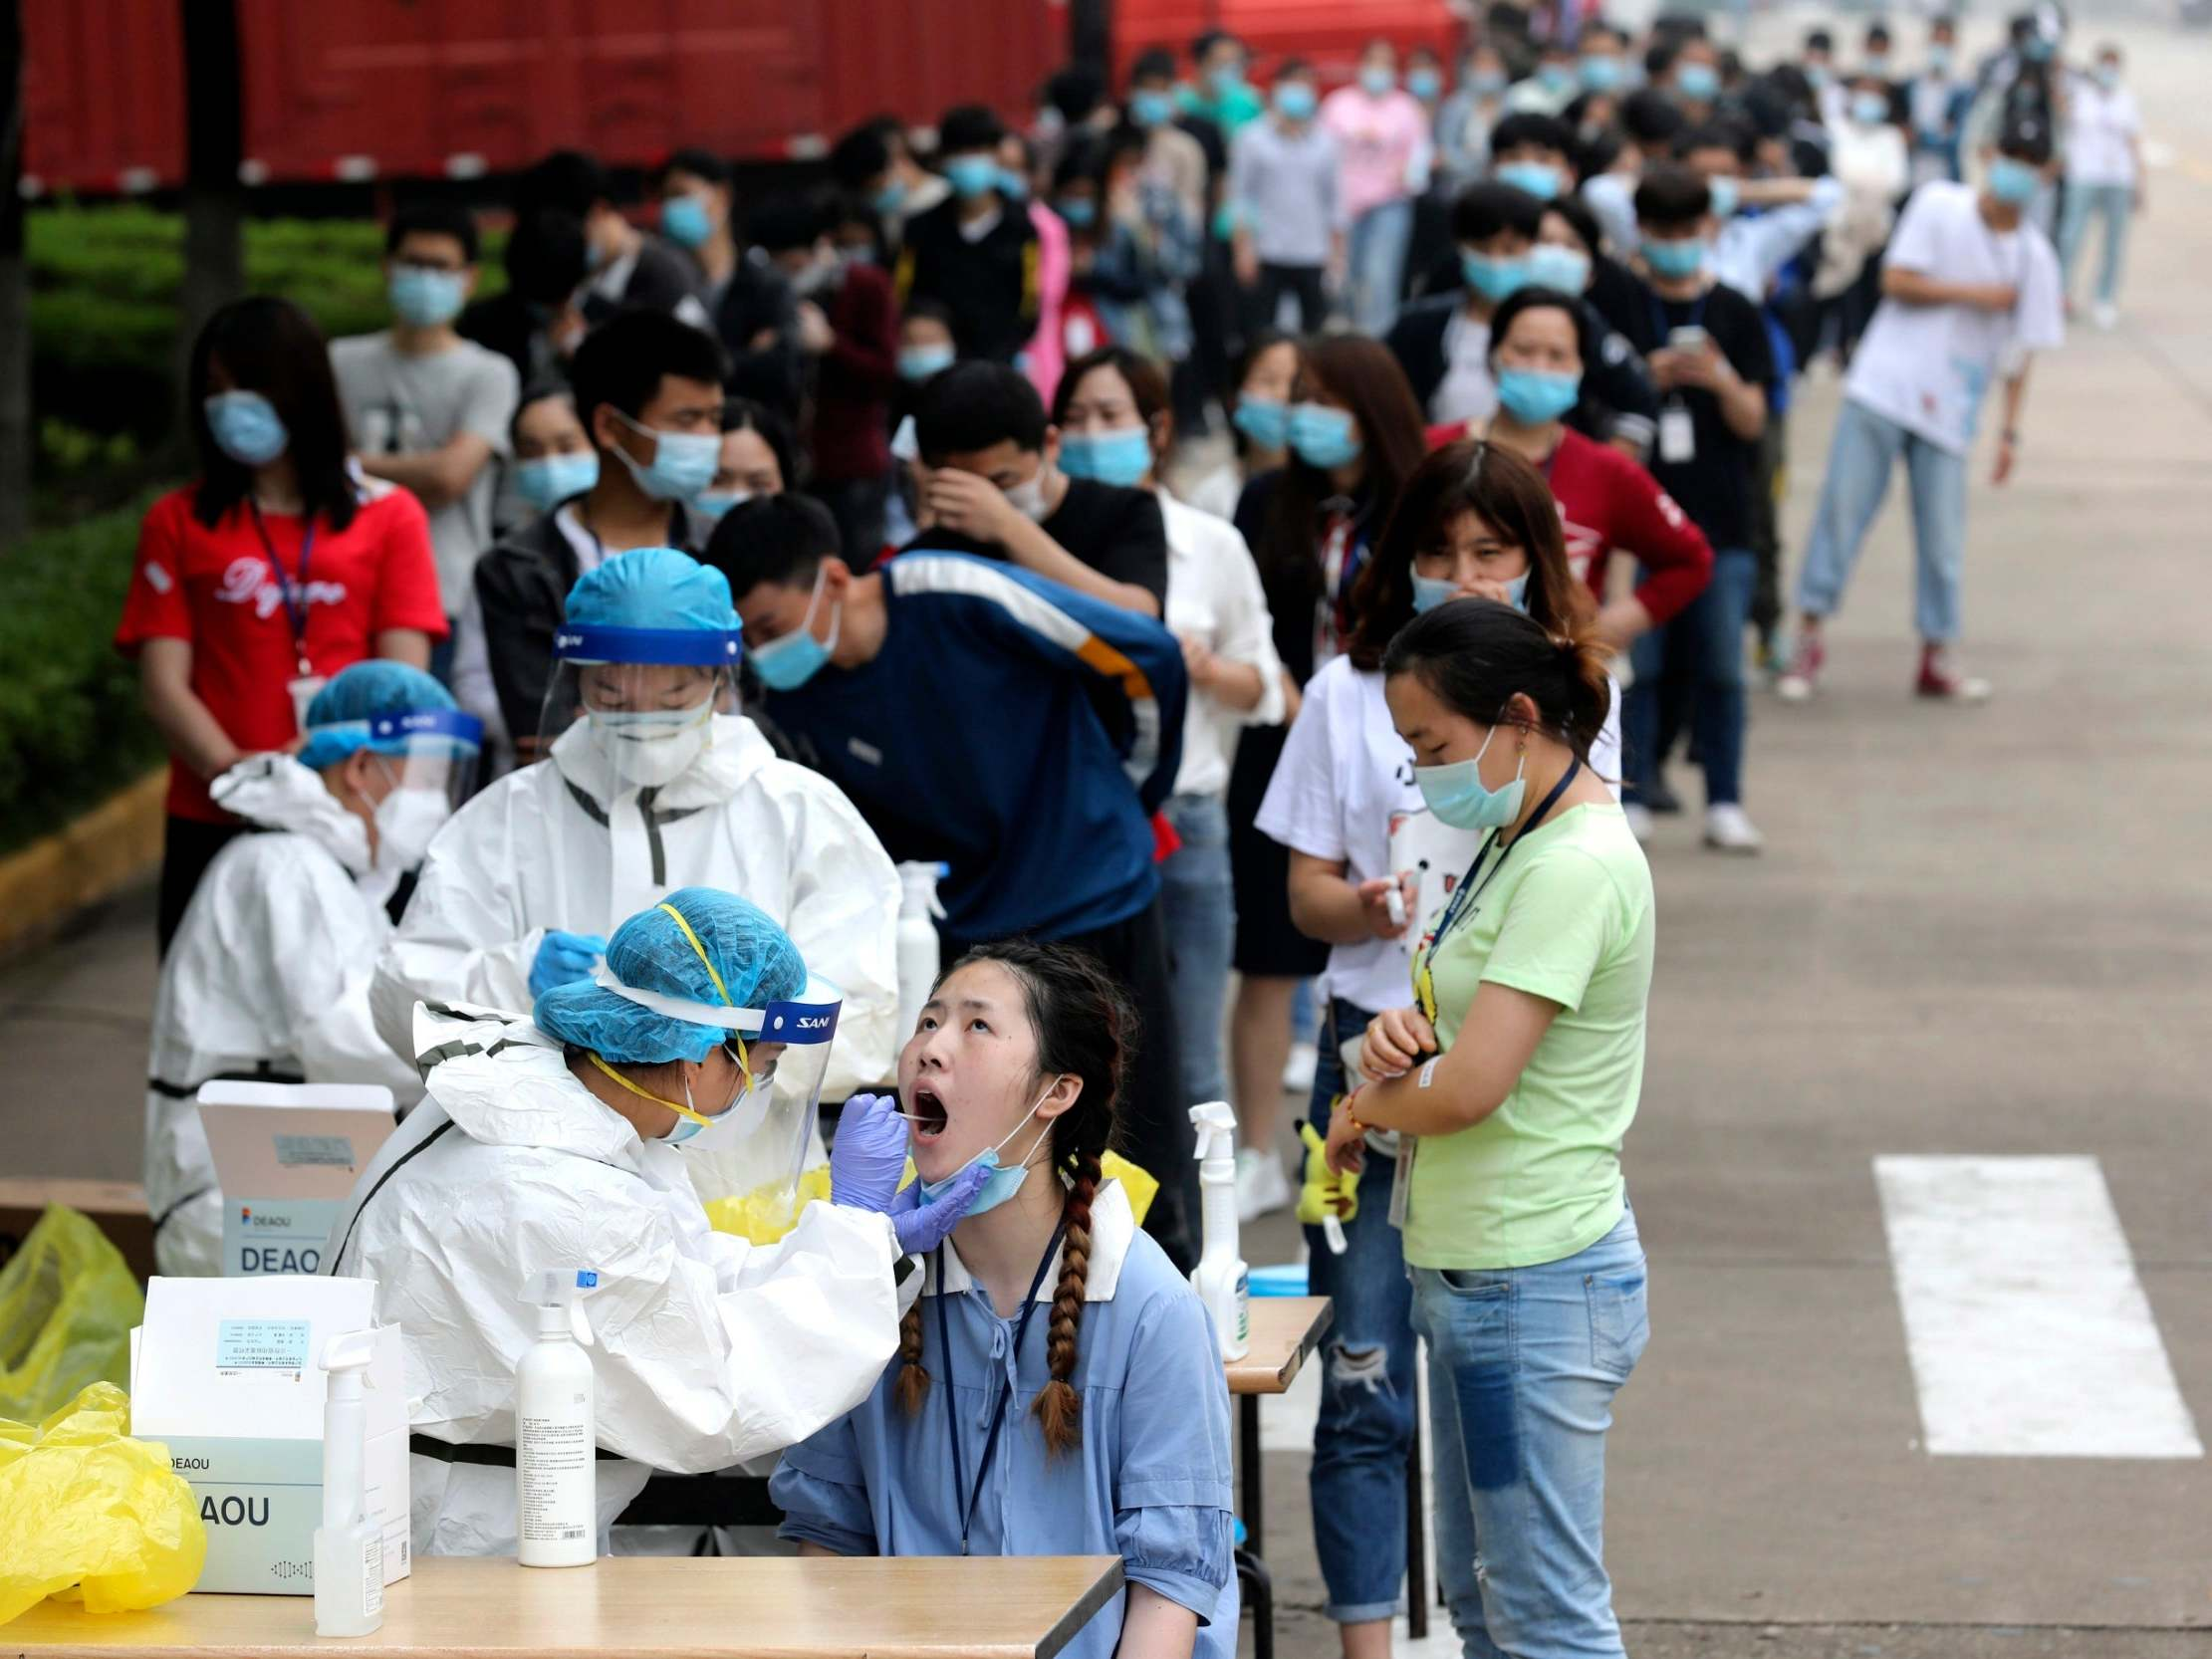 Coronavirus: How did Wuhan test 6.5 million people in a matter of days?